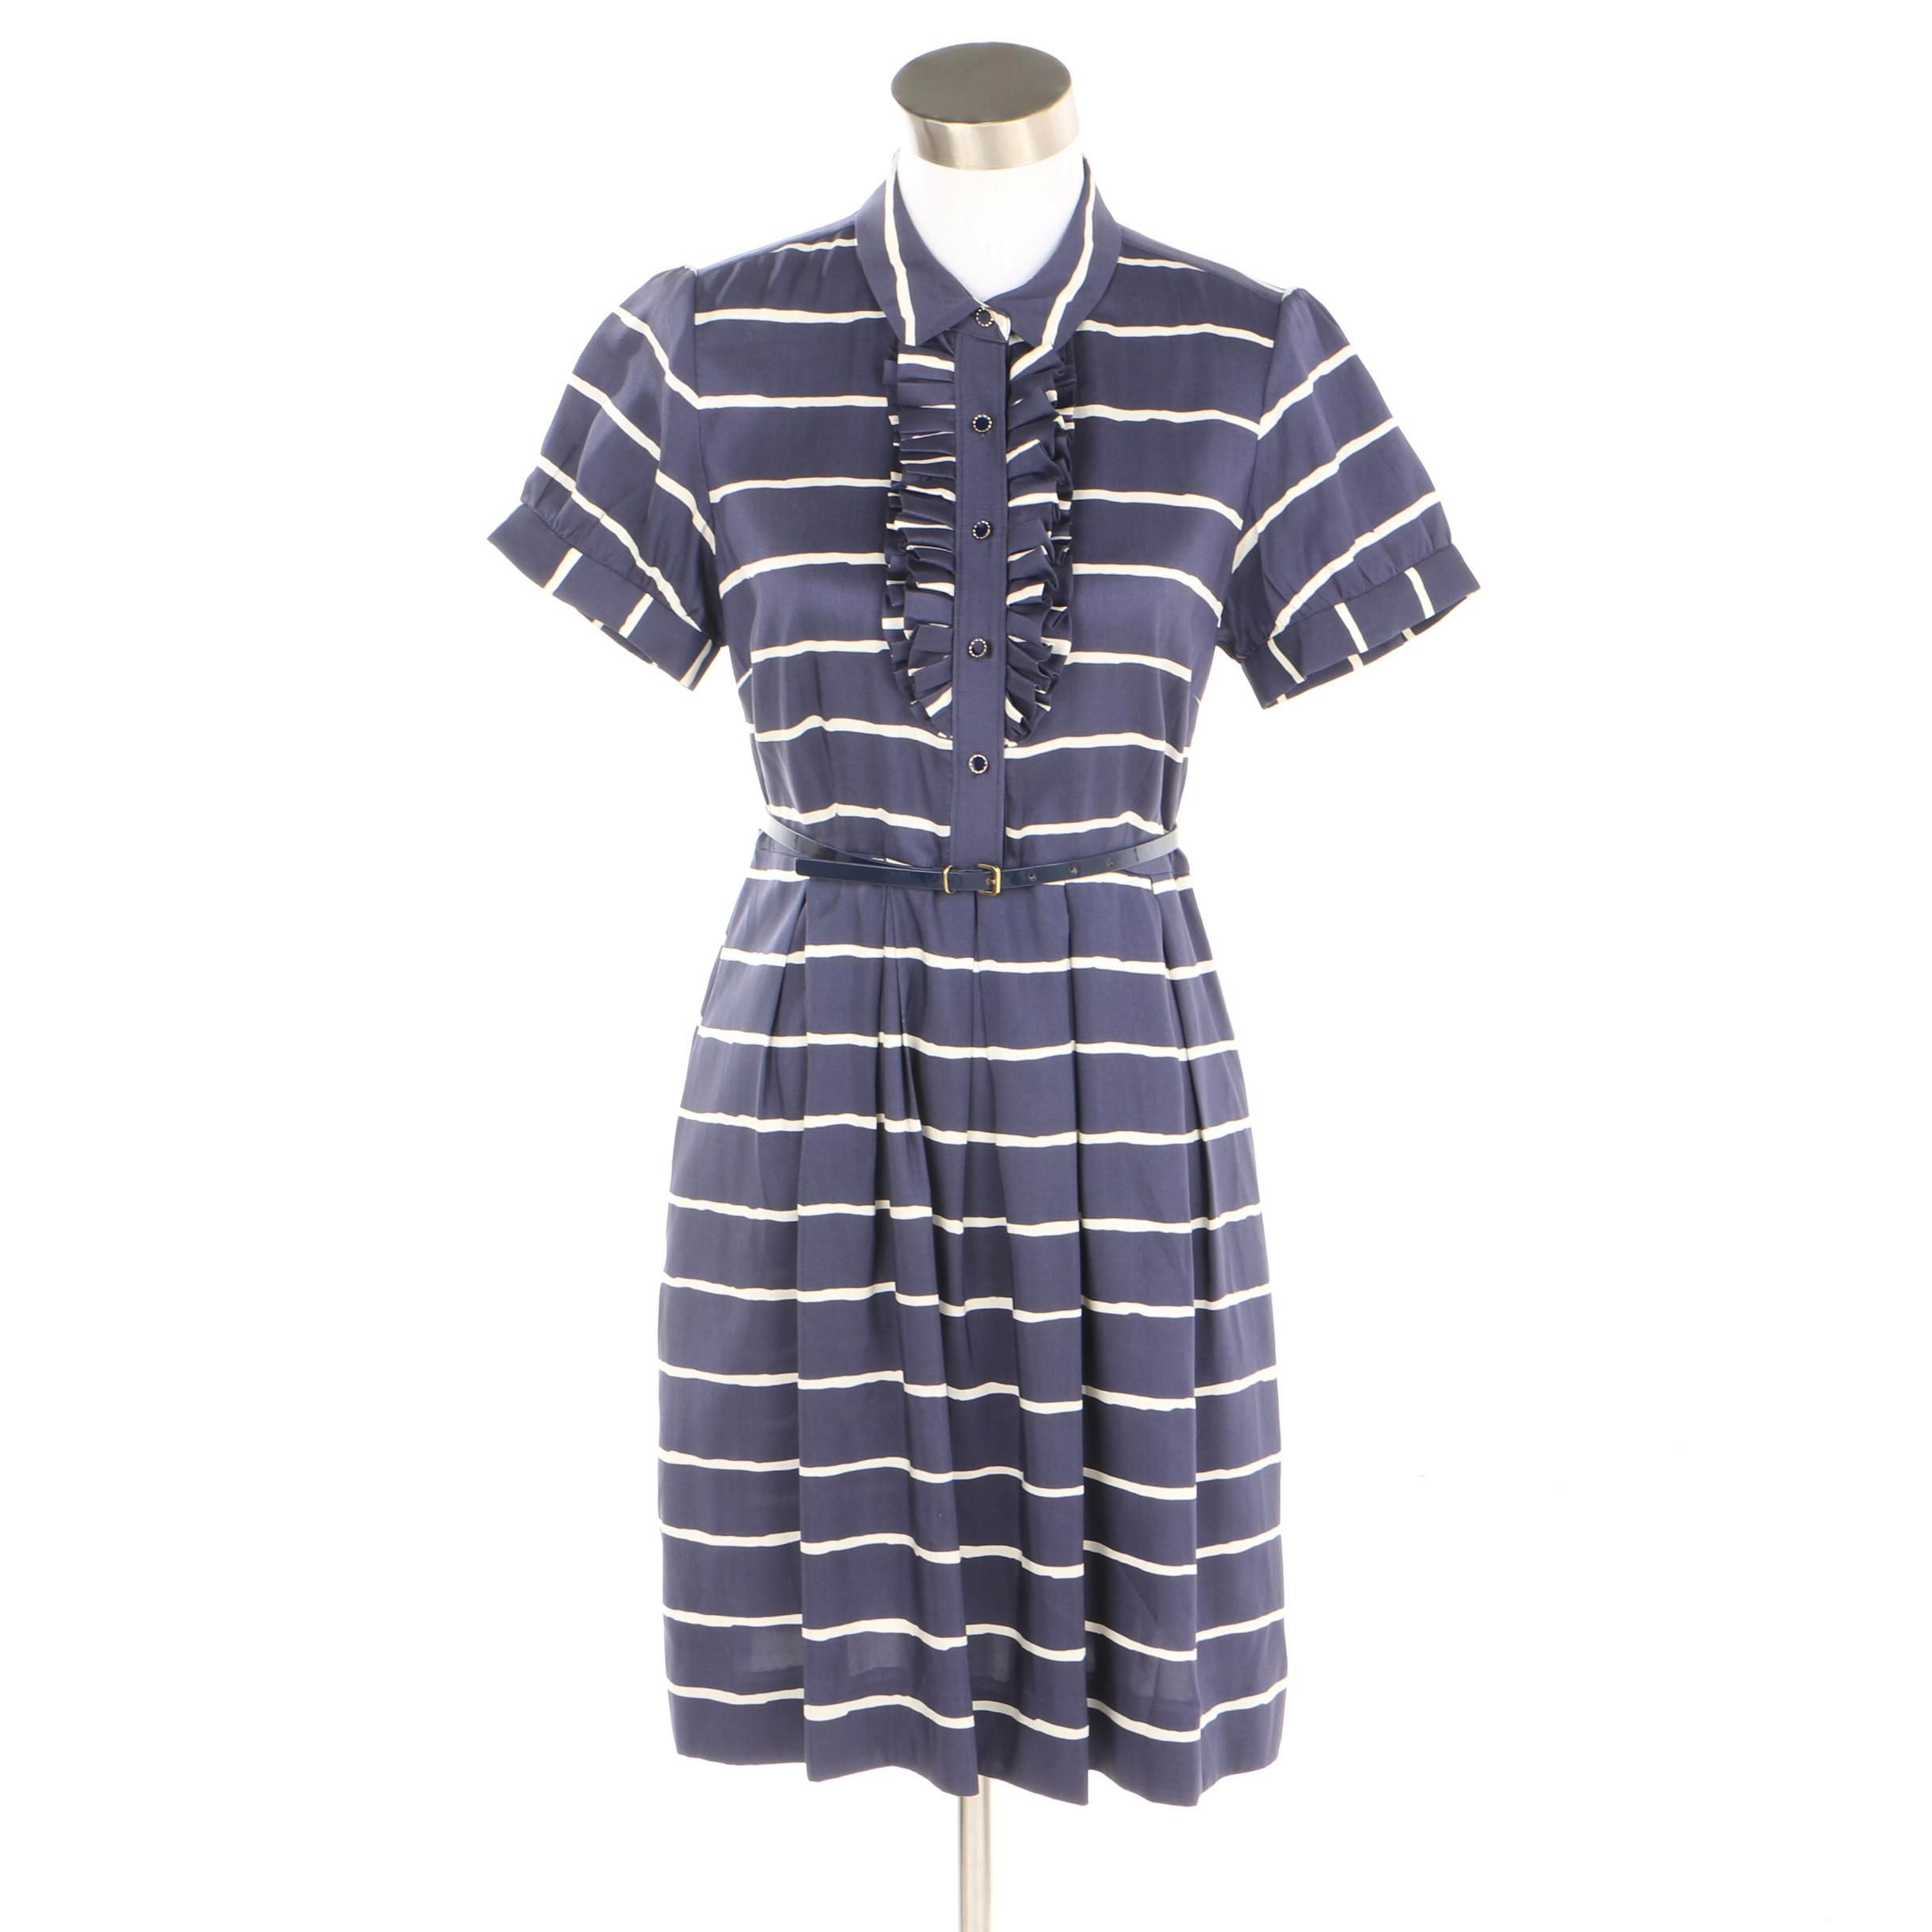 Kate Spade New York Navy and White Striped Silk Dress